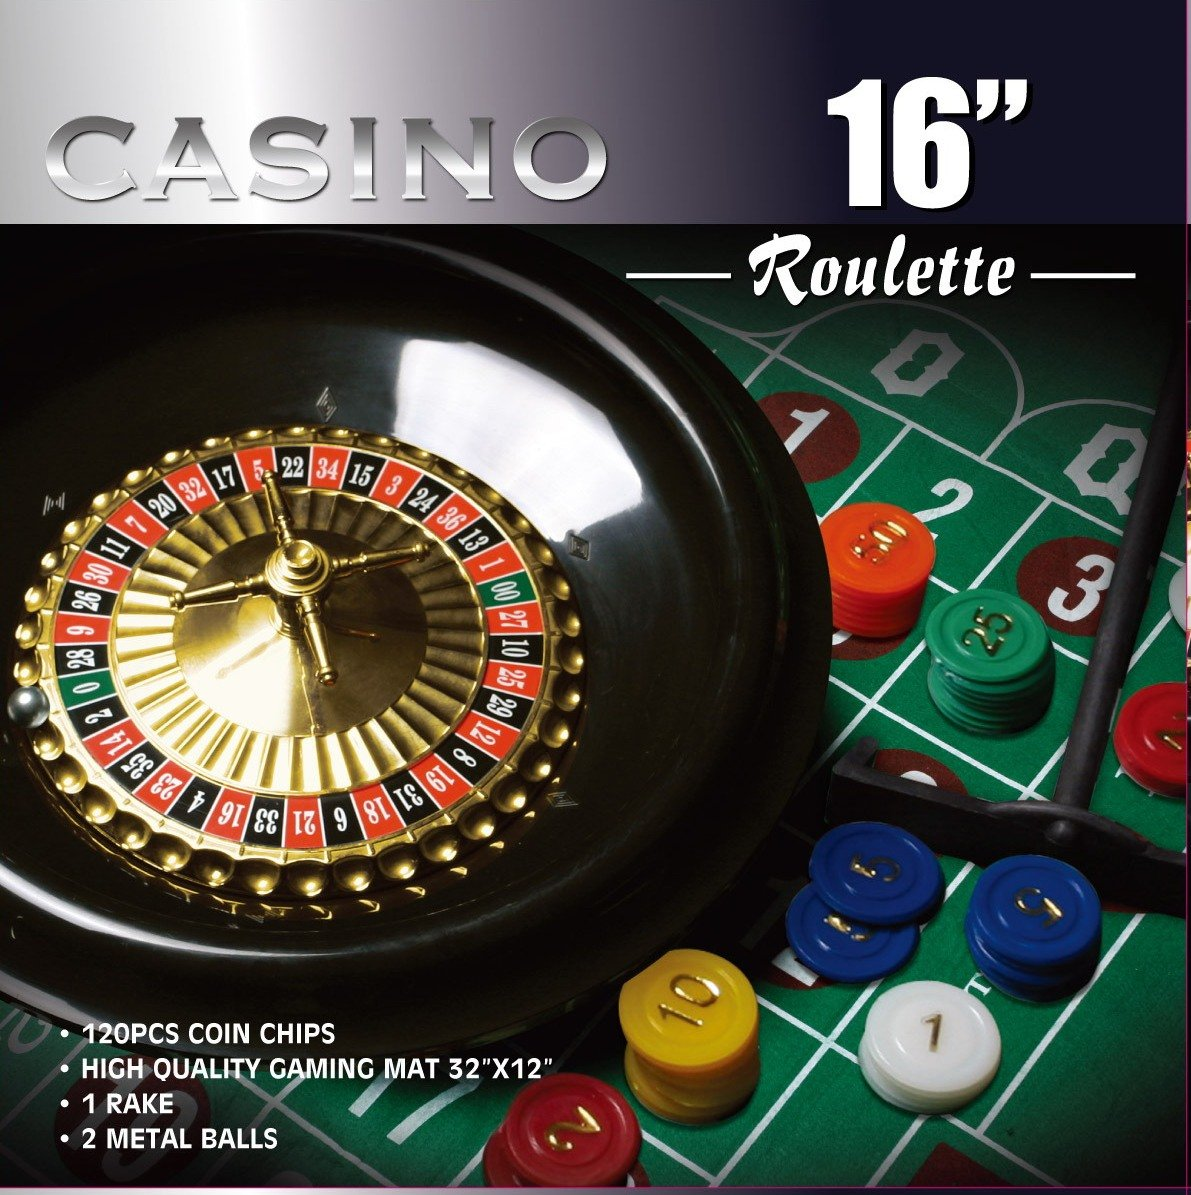 Roulette Wheel Costume Casino 16-inch Roulette Wheel